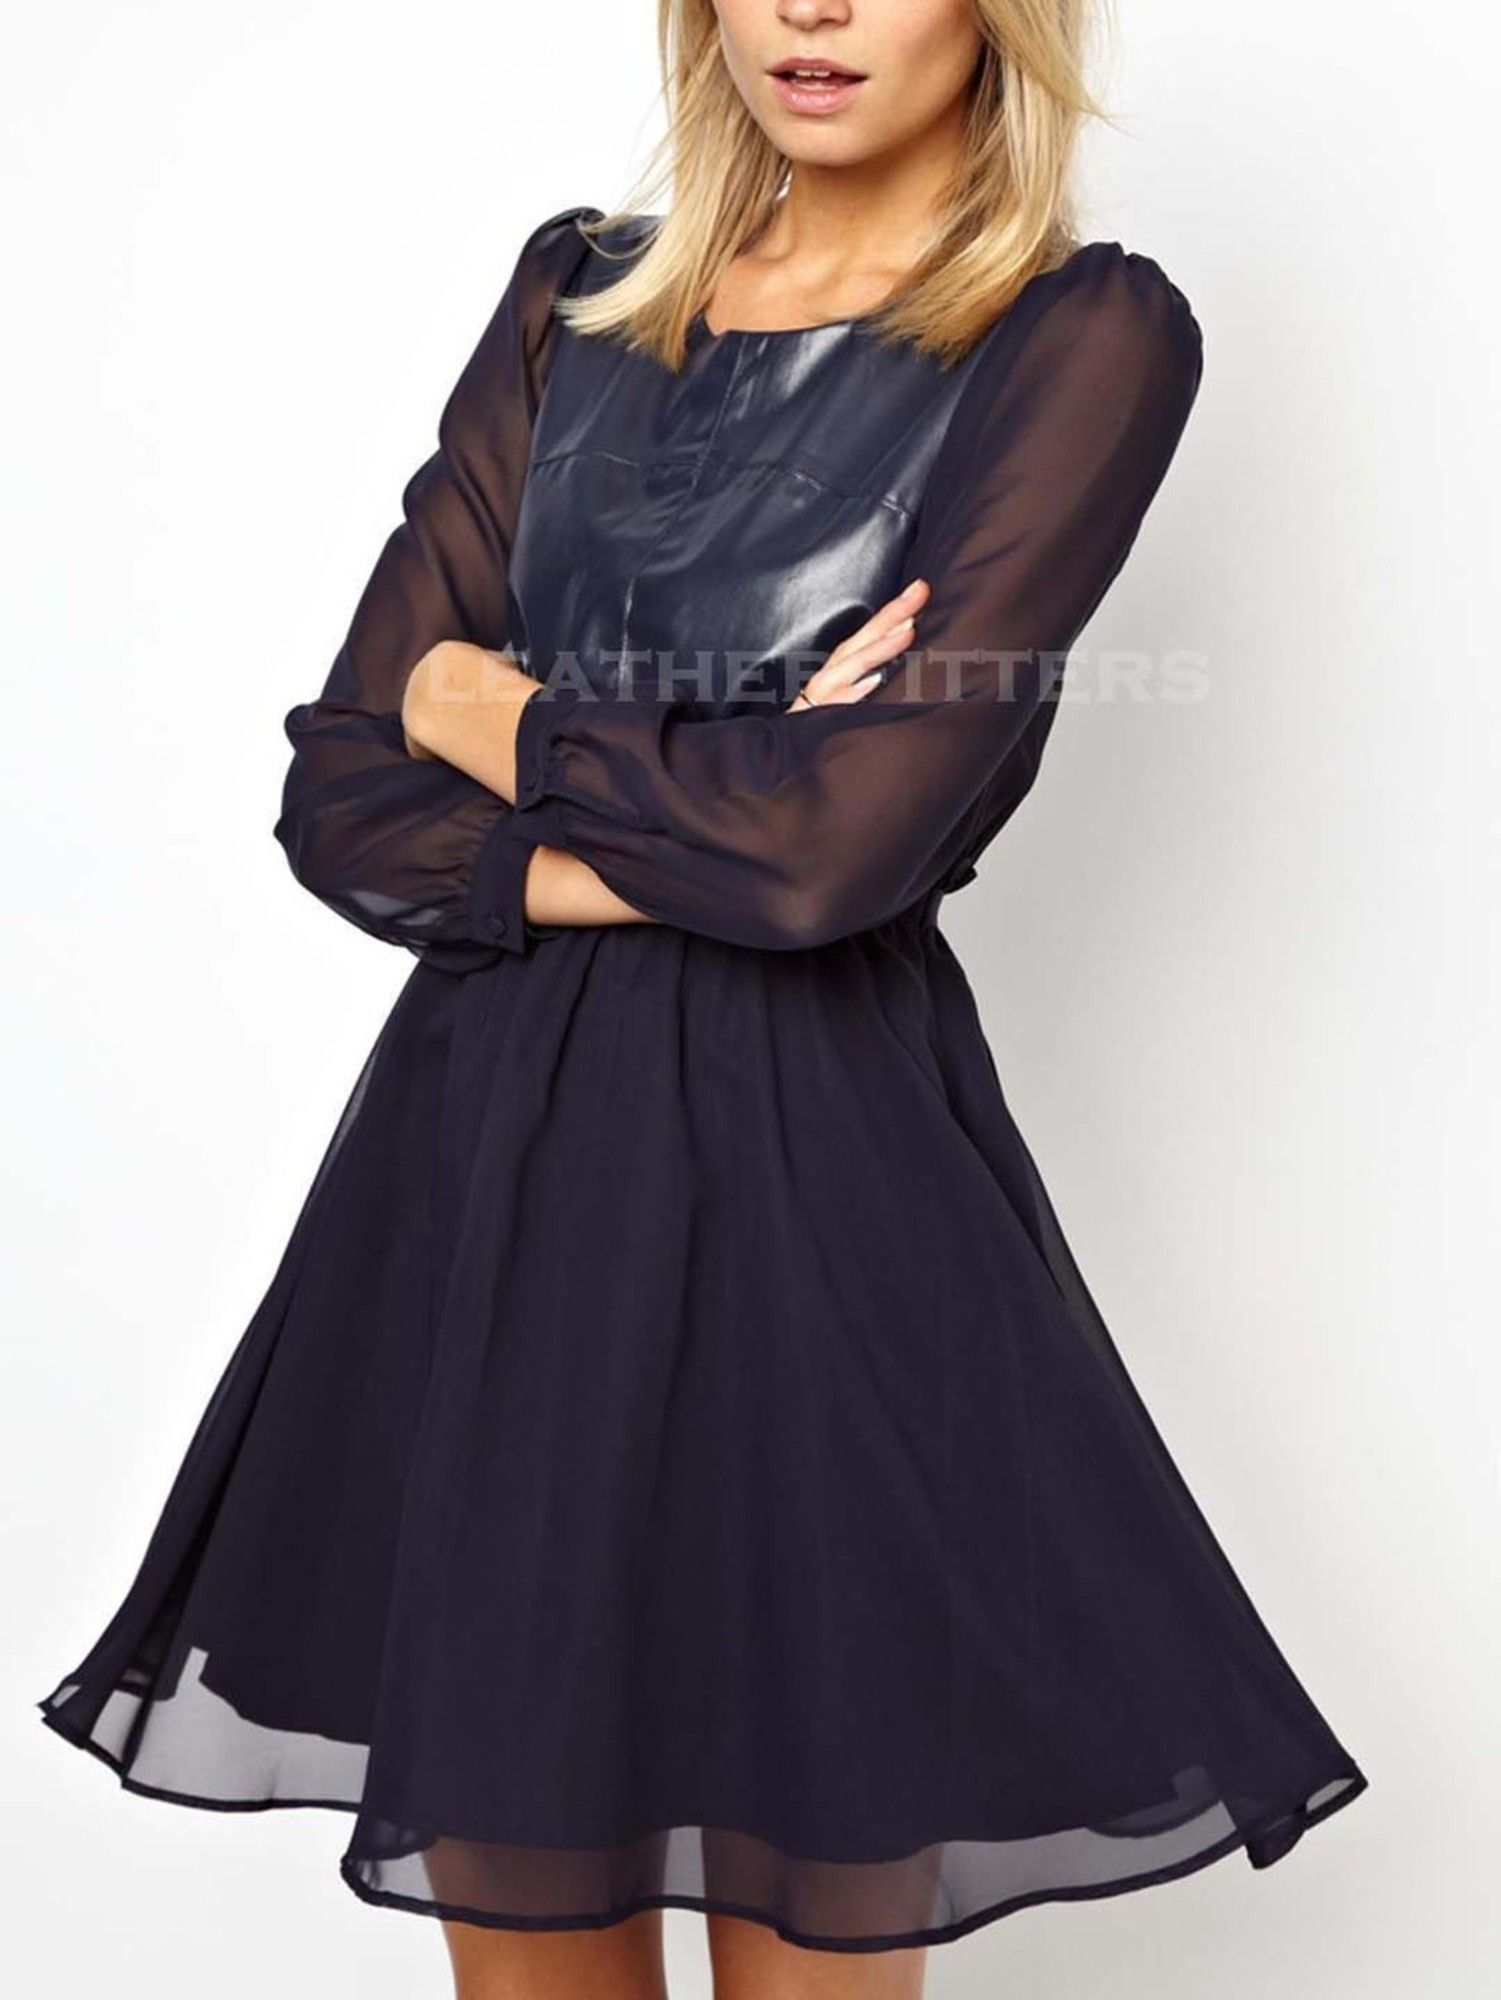 Women leather dresses are now eyecatching an outfit for all